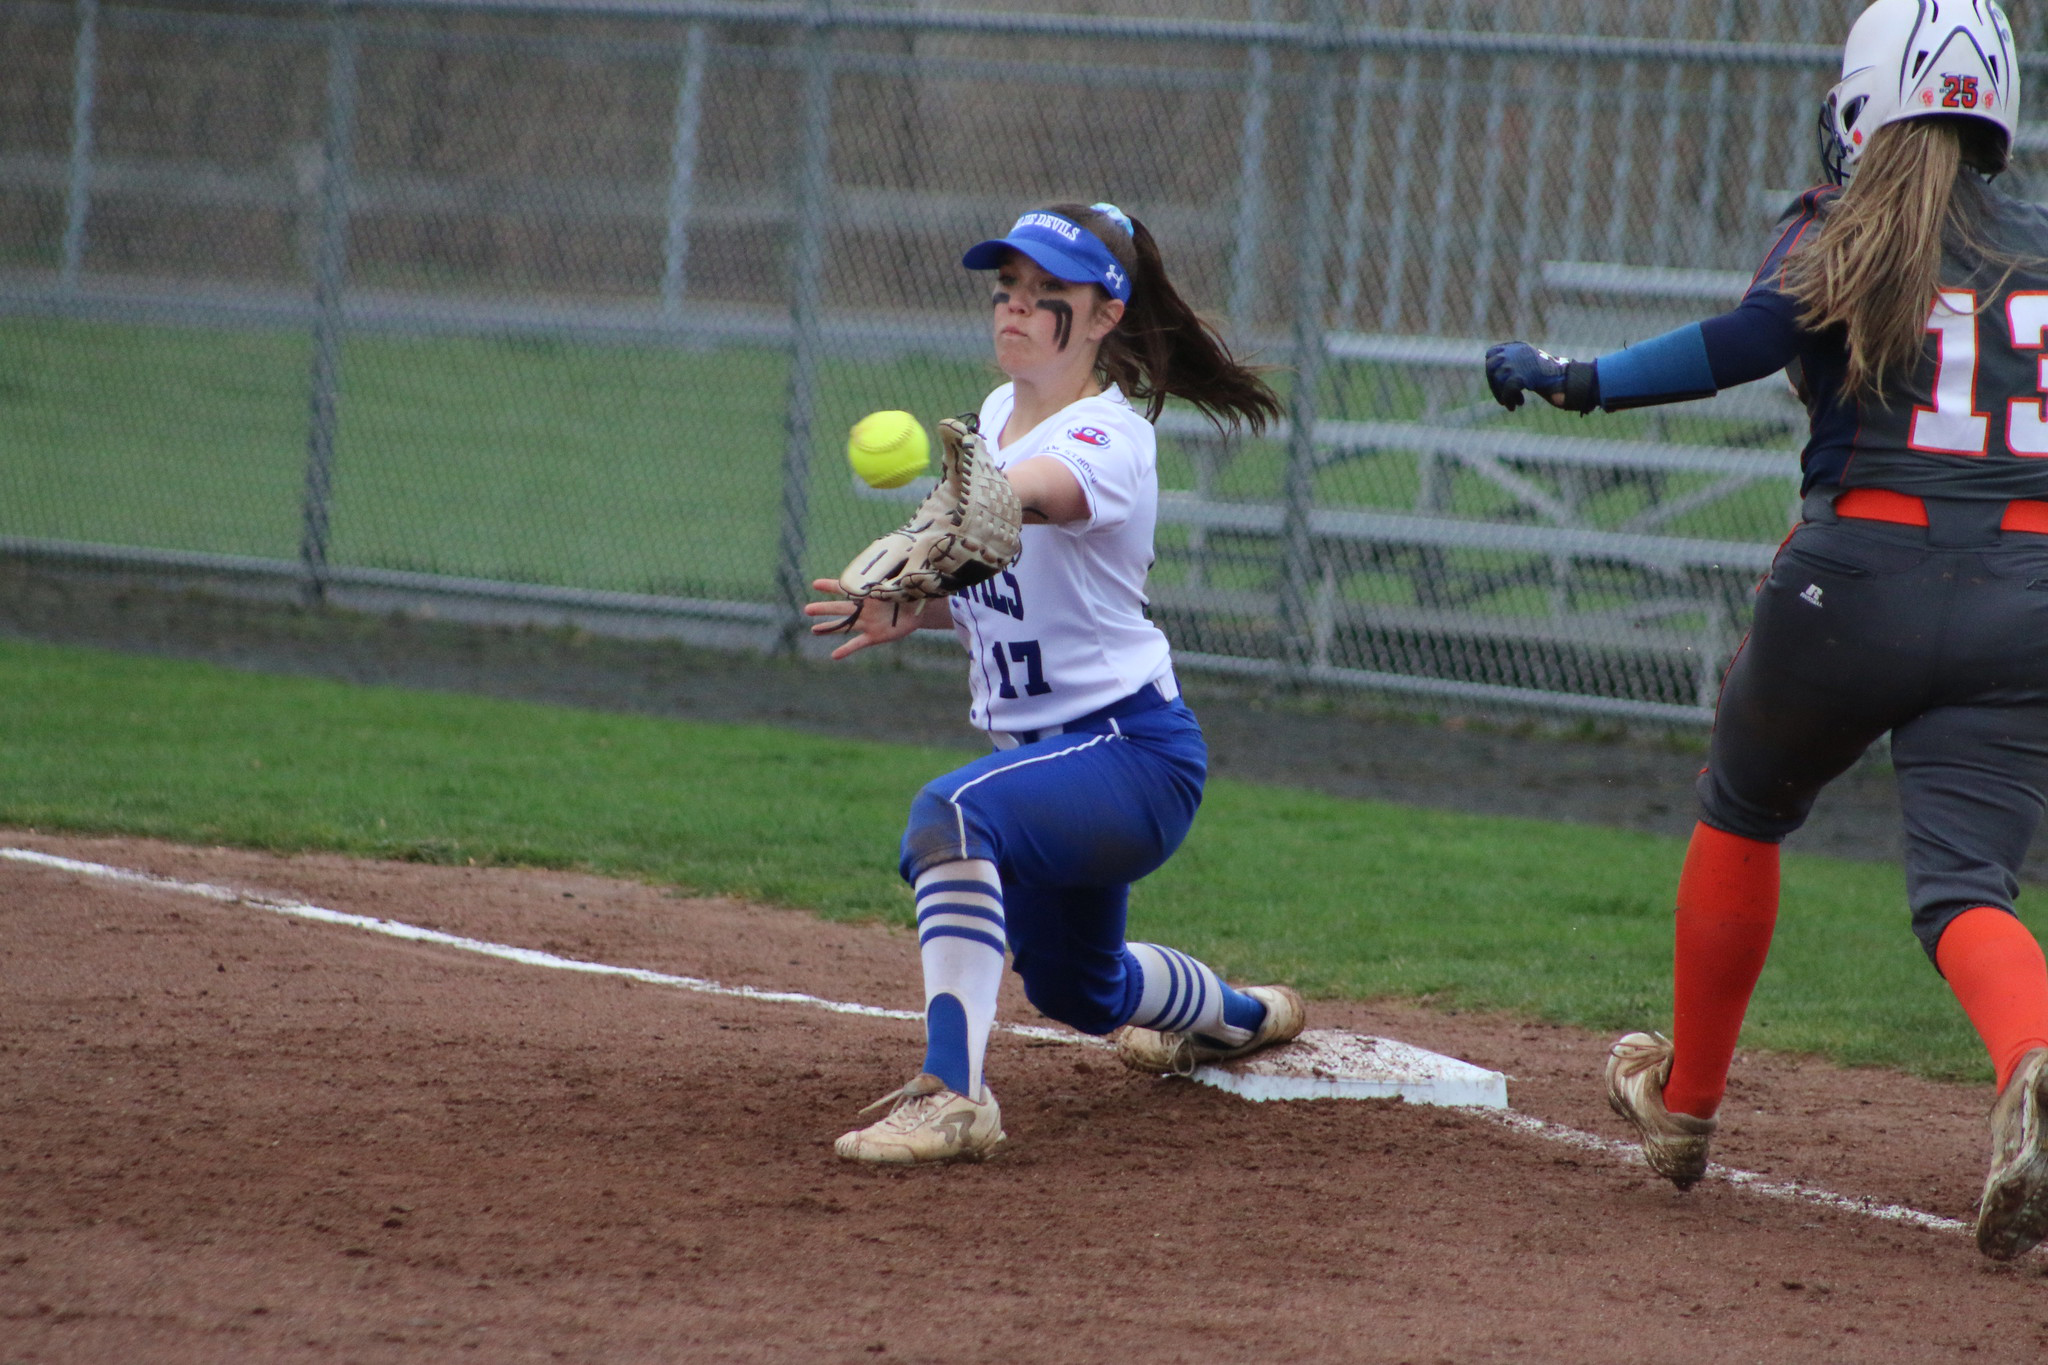 Lady Devils continue to impress